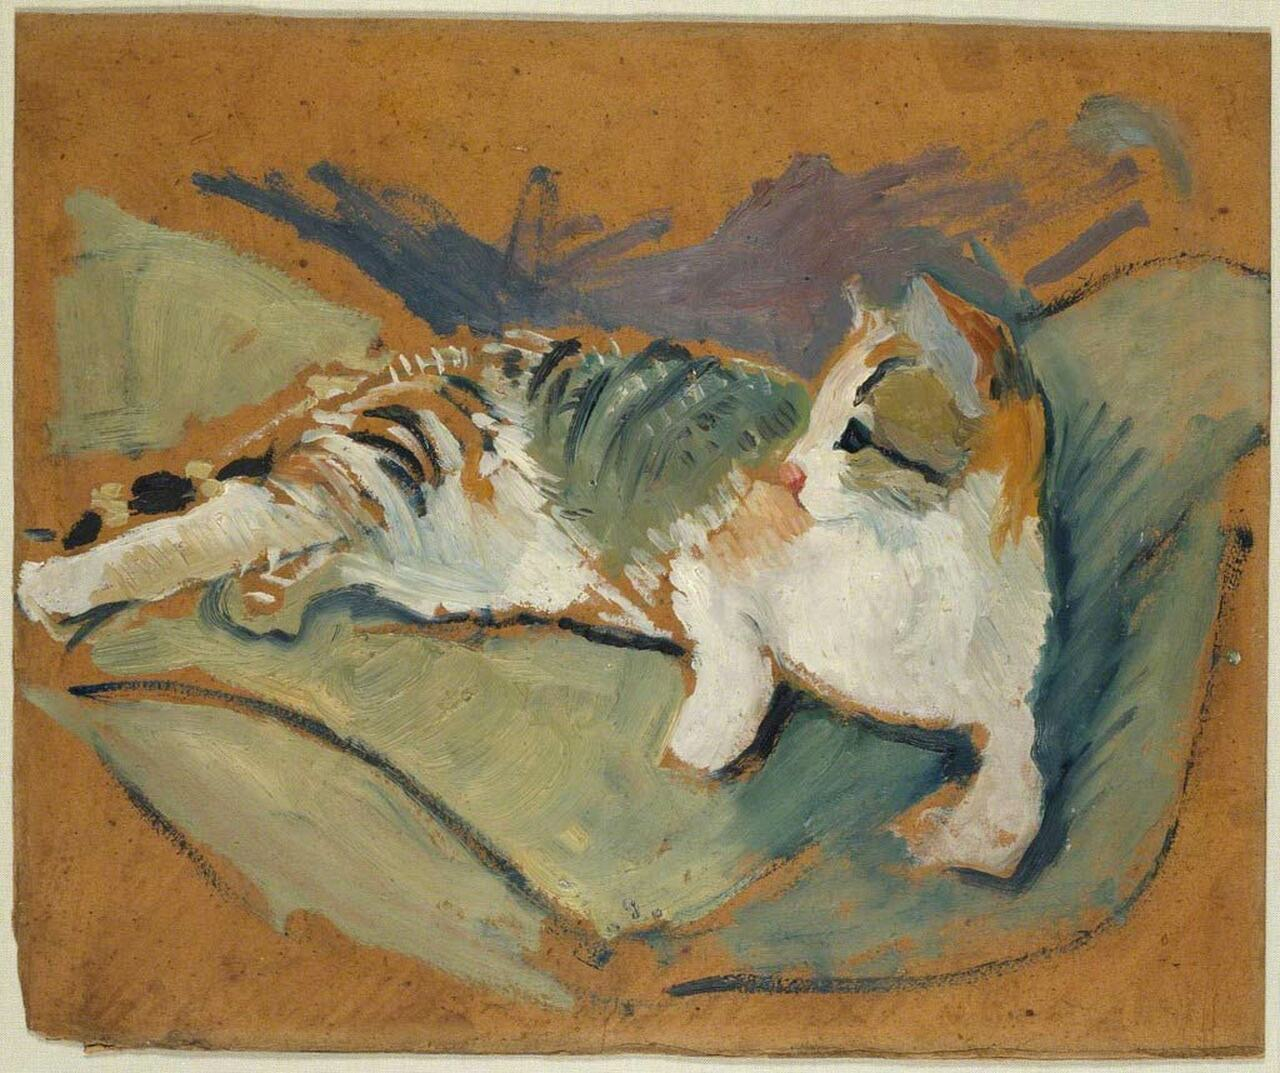 Cat on Green Pilllow, August Mackee